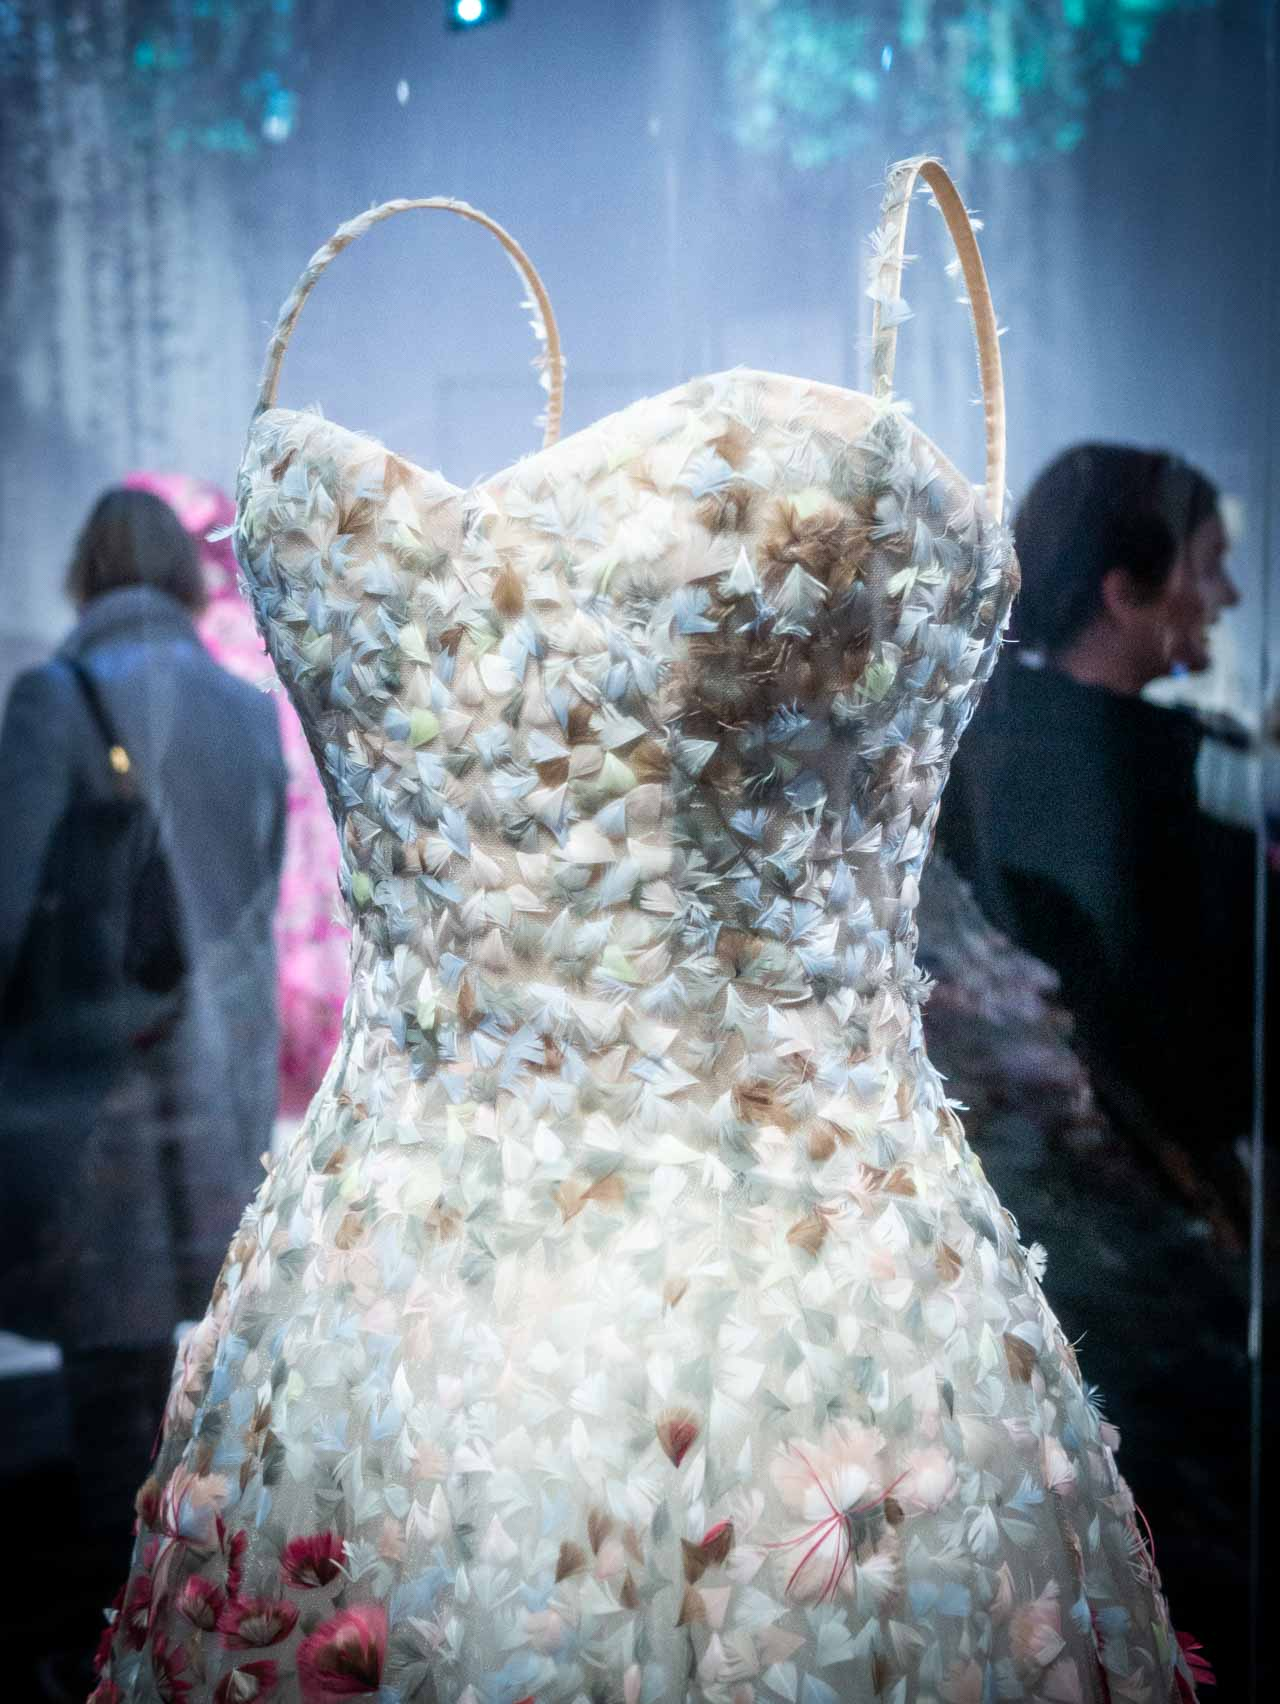 Jardin Fleuri Dress 'Garden in Bloom'Dress with feathered detail by Maria Grazia Chiuri for Christian Dior, Haute Couture, Spring-Summer 2017. Taken at the V&A exhibition © The Cutting Class, 2019.